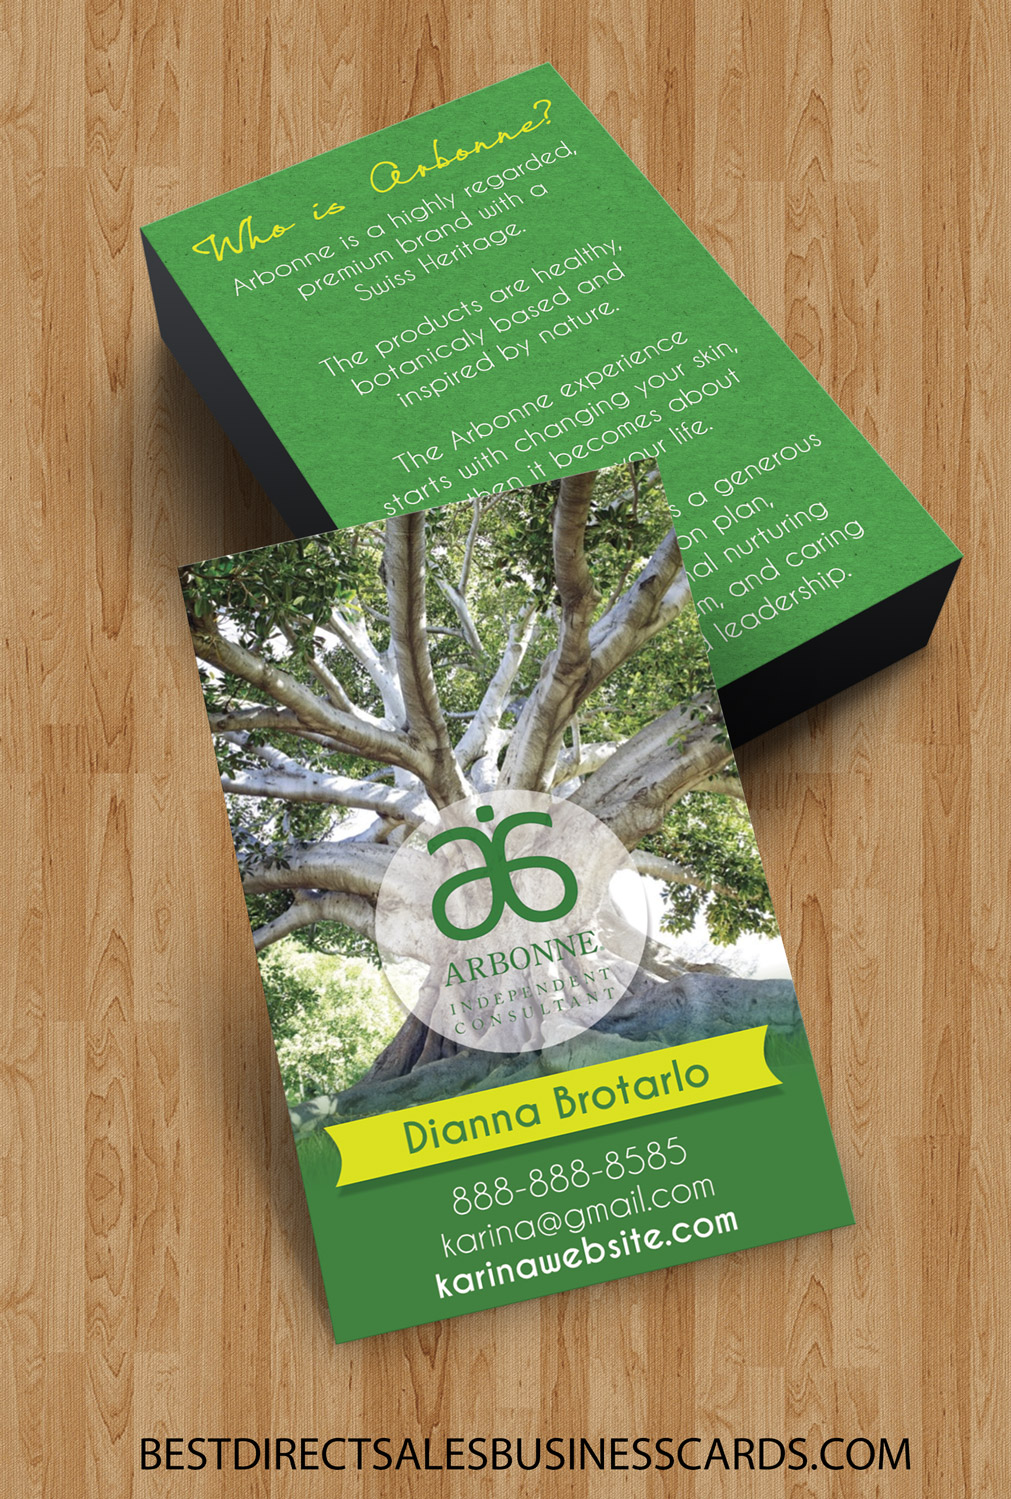 arbonne business cards style 4 · kz creative services · online